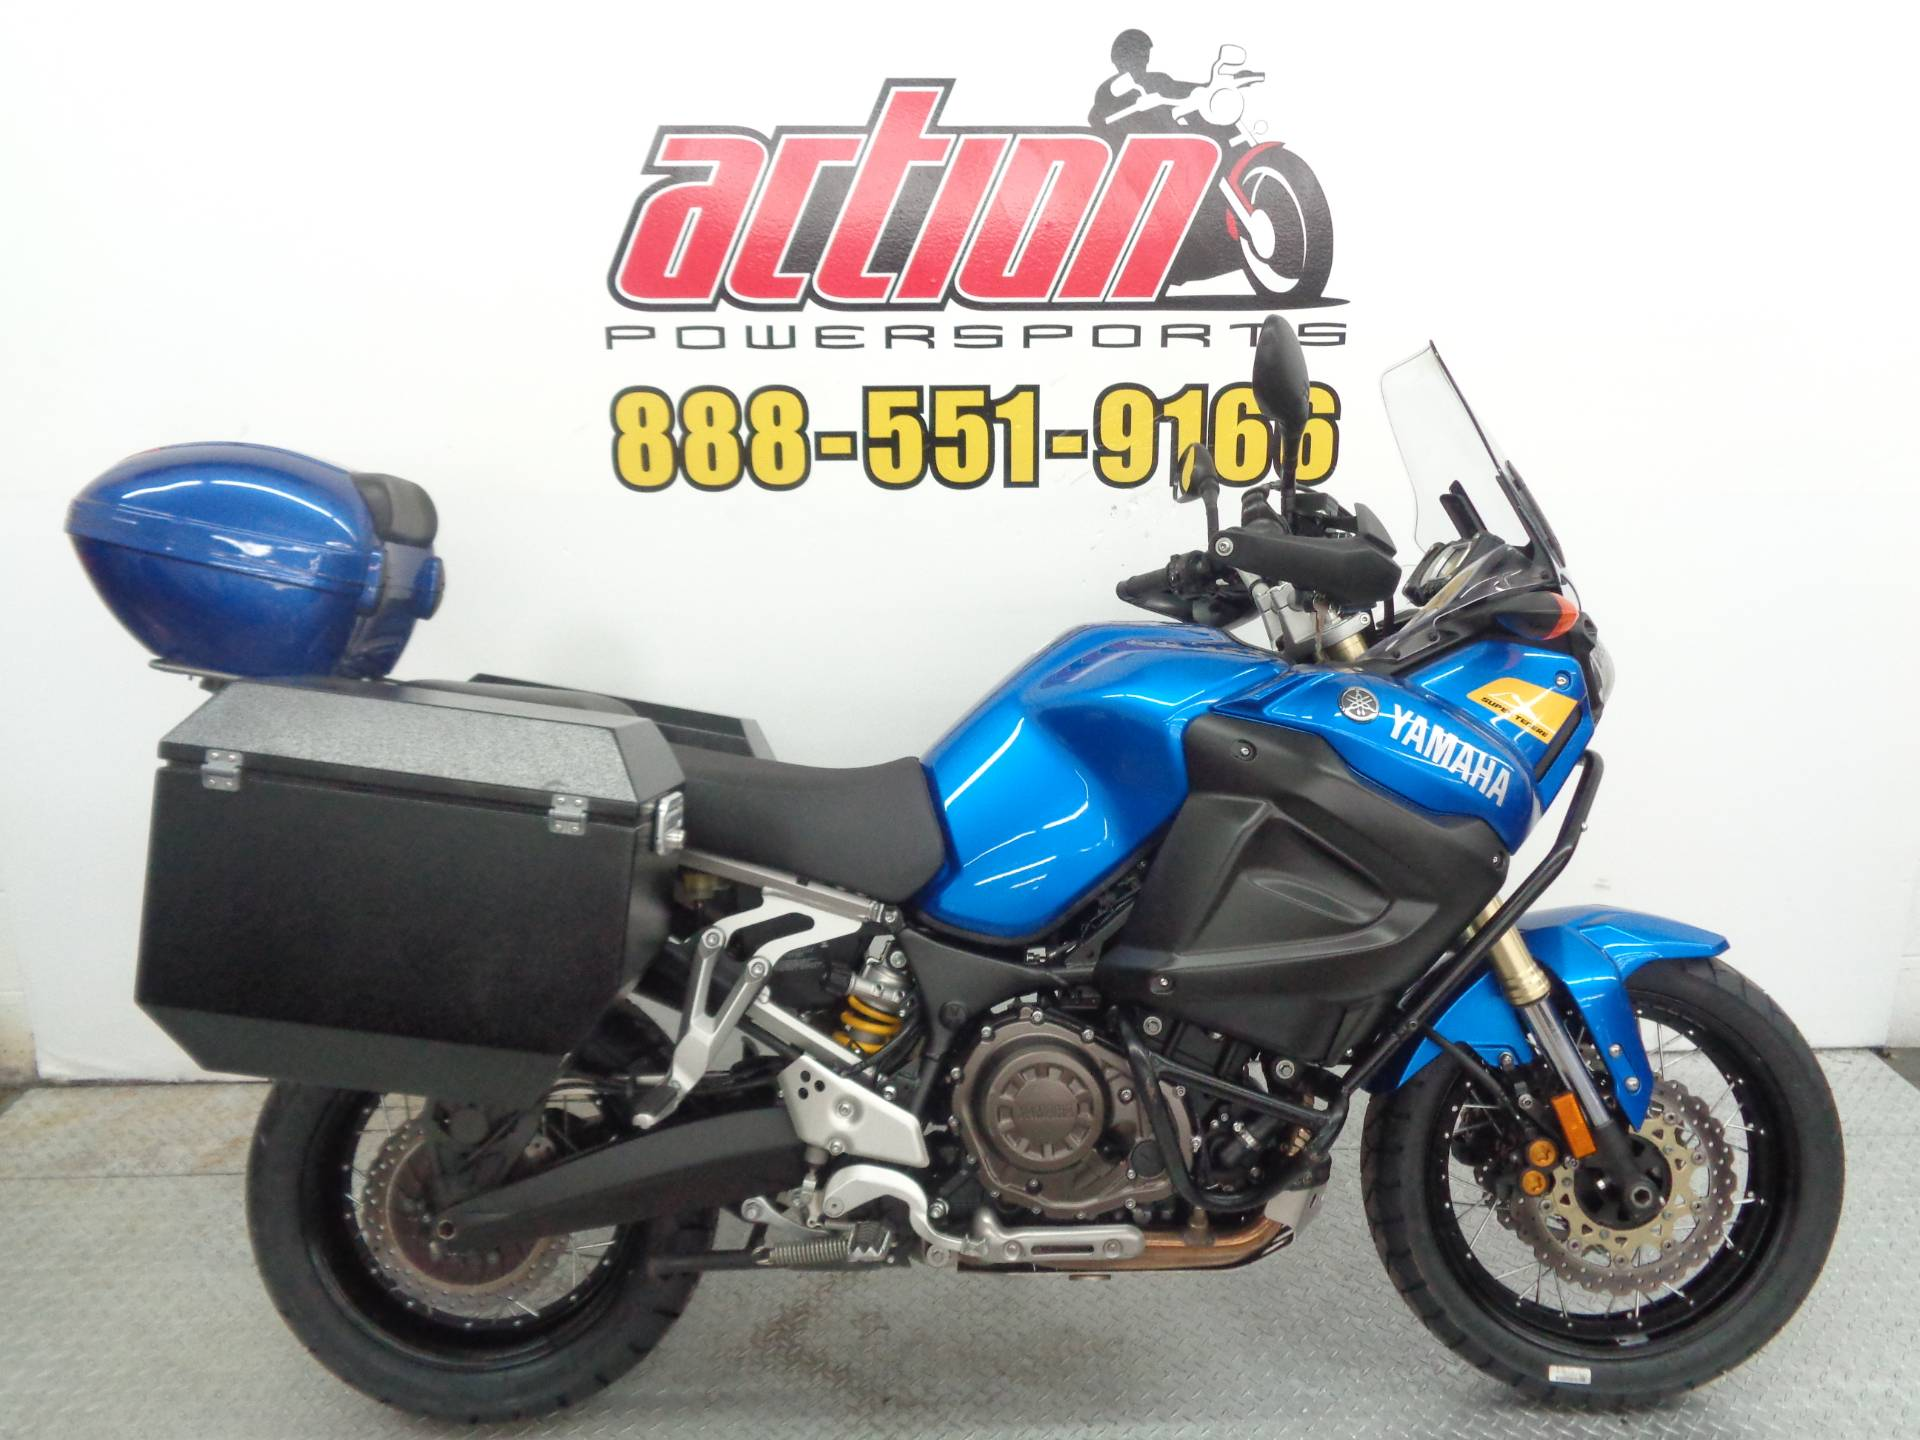 2012 Yamaha Super Ténéré in Tulsa, Oklahoma - Photo 1